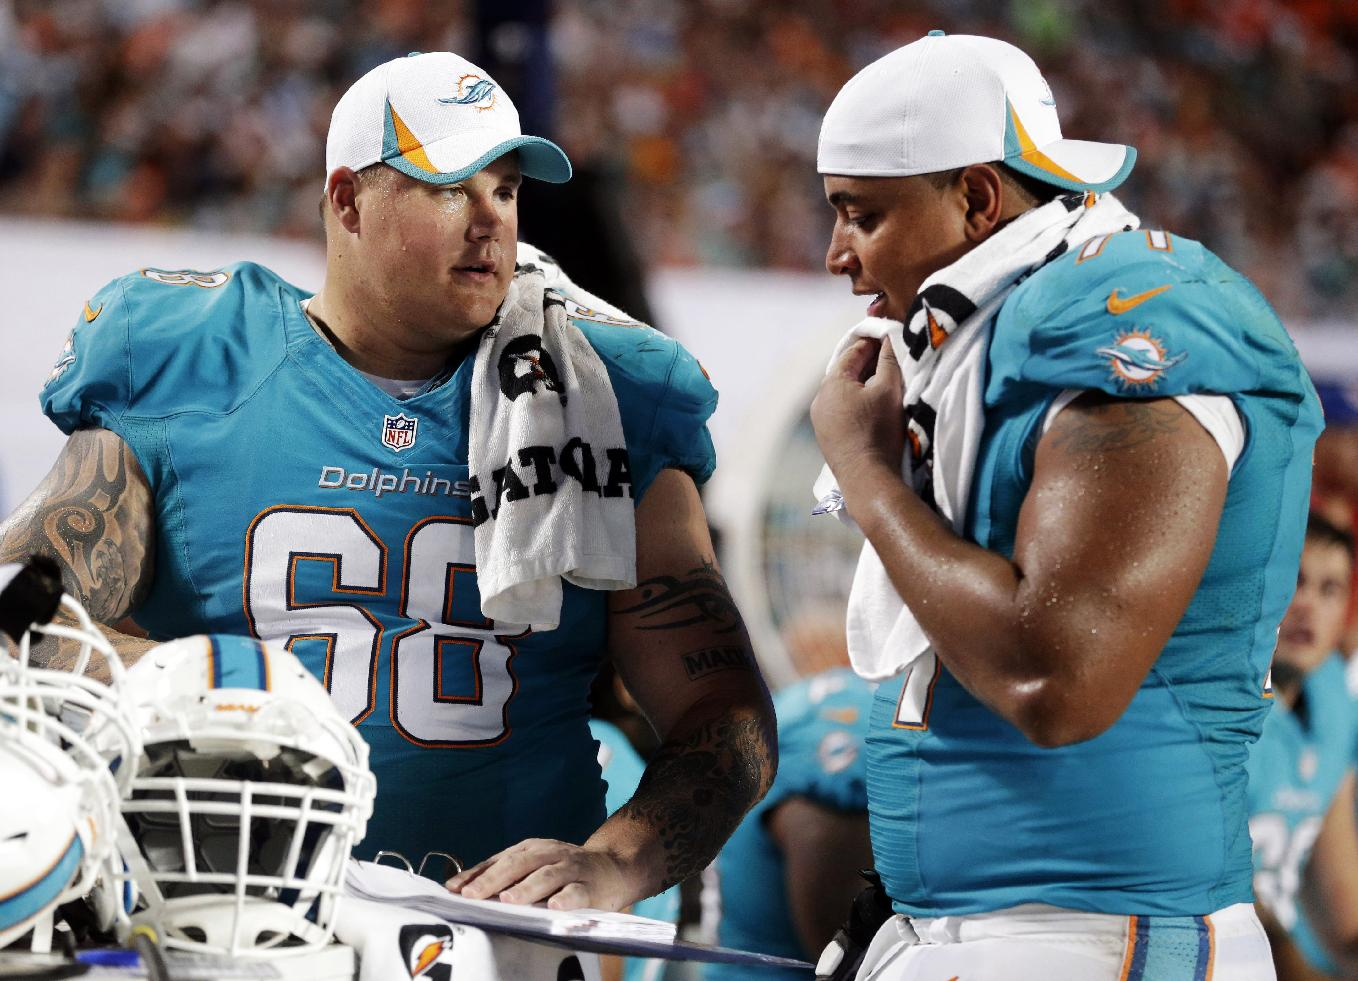 In this Aug. 24, 2013, file photo, Miami Dolphins guard Richie Incognito (68) and tackle Jonathan Martin (71) look over plays during an NFL preseason football game against the Tampa Bay Buccaneers in Miami Gardens, Fla. Martin was subjected to